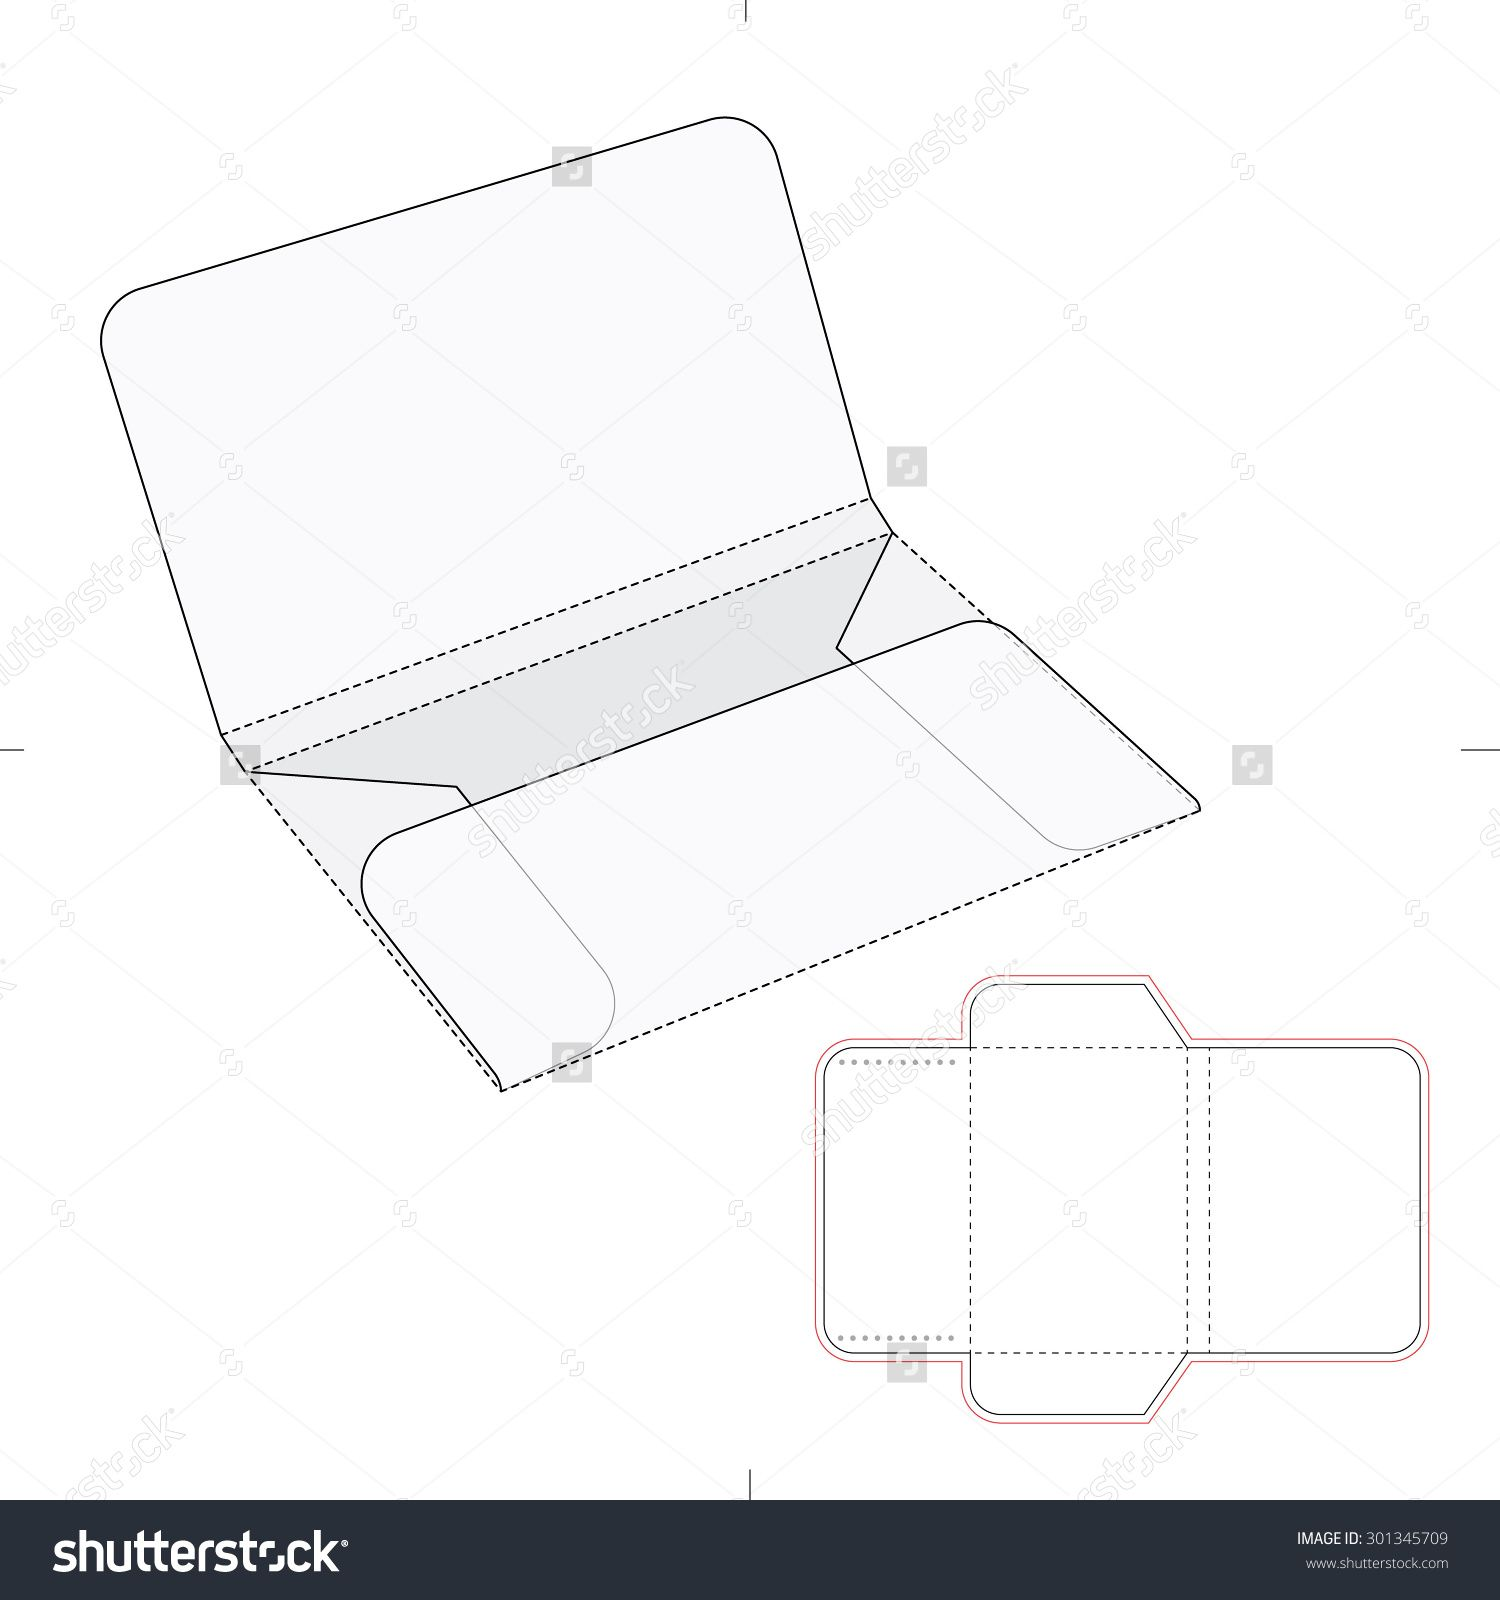 Envelope folder with blueprint template stock vector illustration envelope folder with blueprint template stock vector illustration 301345709 shutterstock malvernweather Choice Image